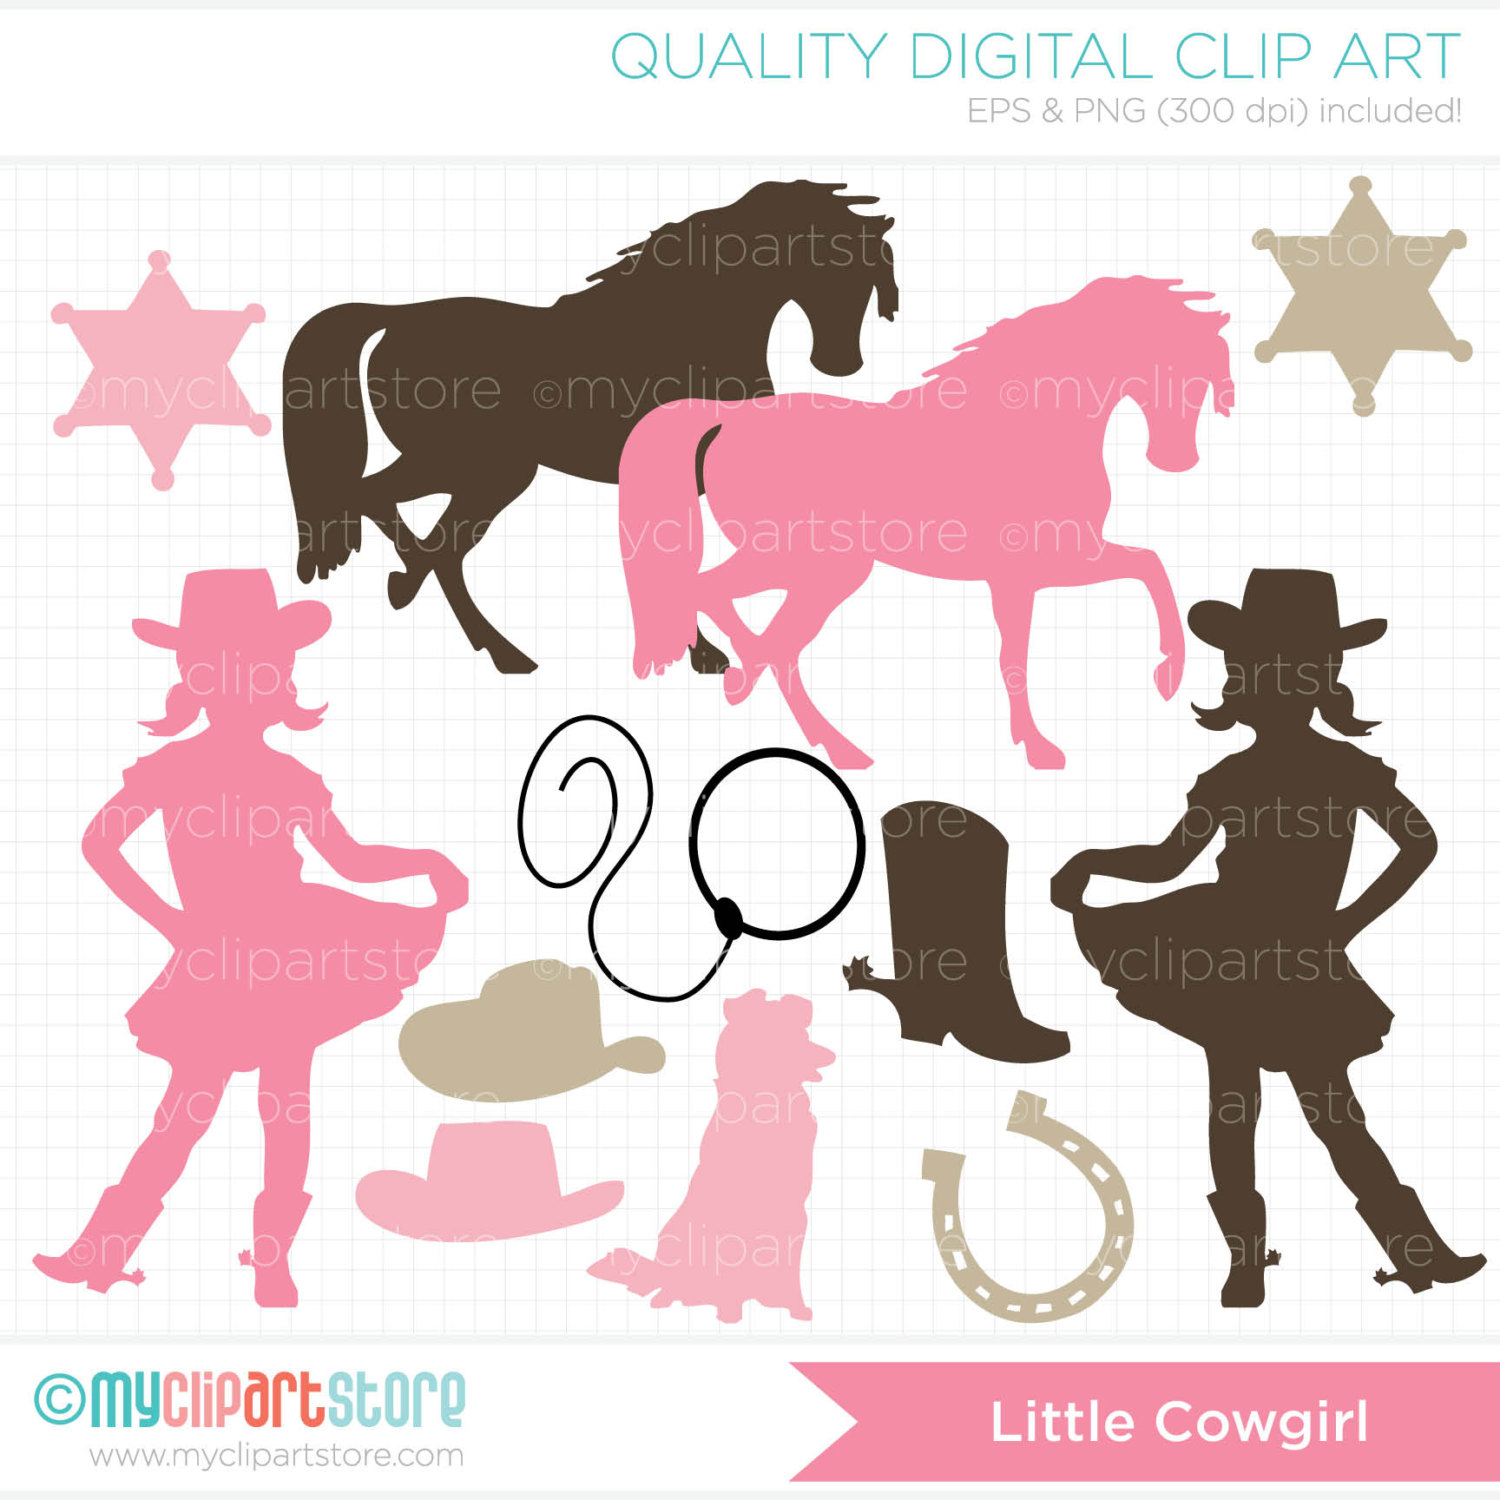 Cowgirl clipart little cowgirl Wild pink west silhouette Digital